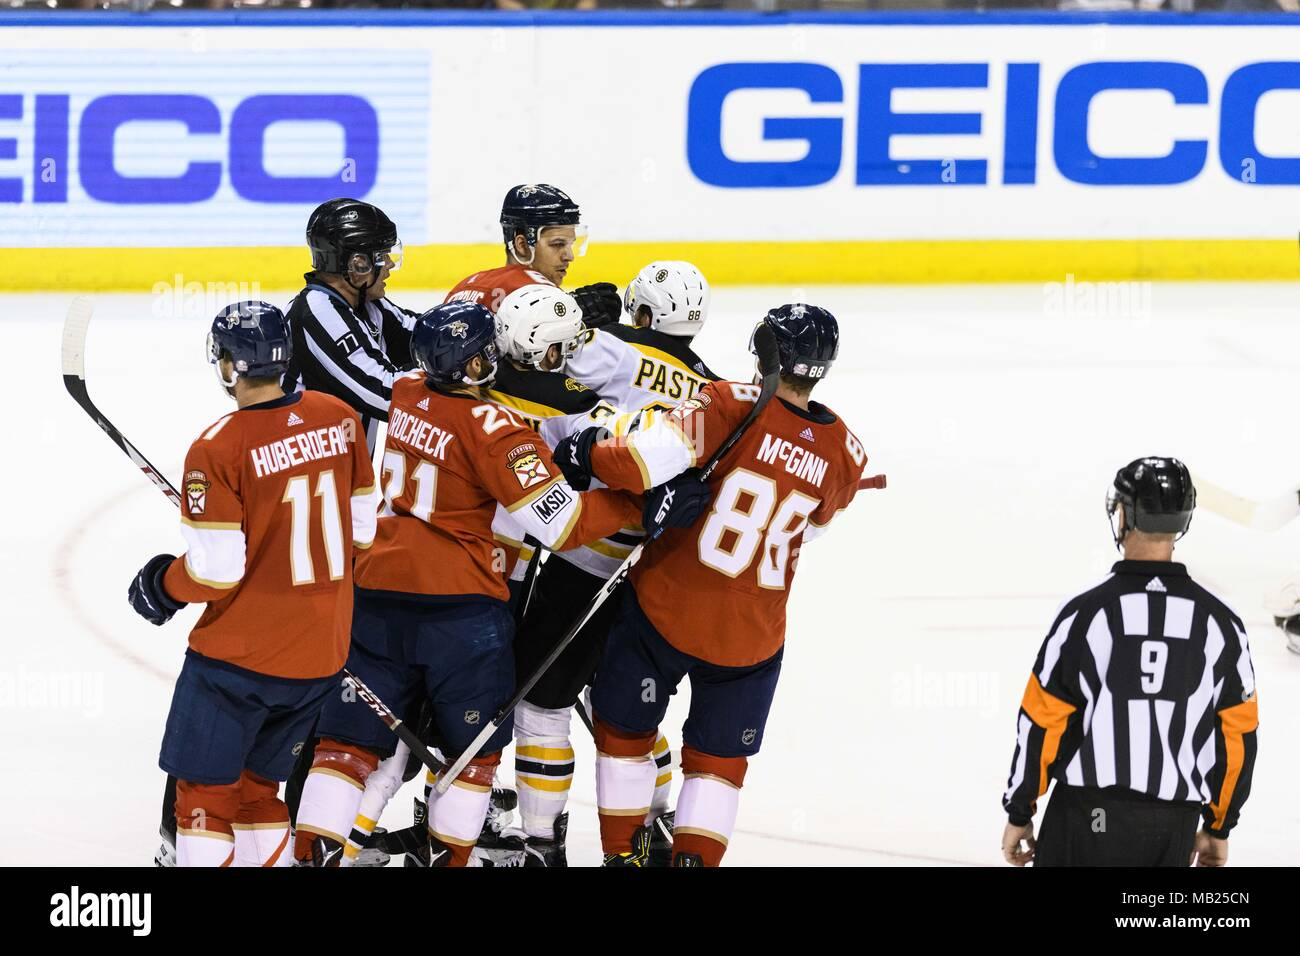 Sunrise, Florida, USA. 5th Apr, 2018. Fight during the Florida Panthers v. Boston Bruins game on Thursday April 5, 2018 Credit: Dalton Hamm/via ZUMA Wire/ZUMA Wire/Alamy Live News - Stock Image